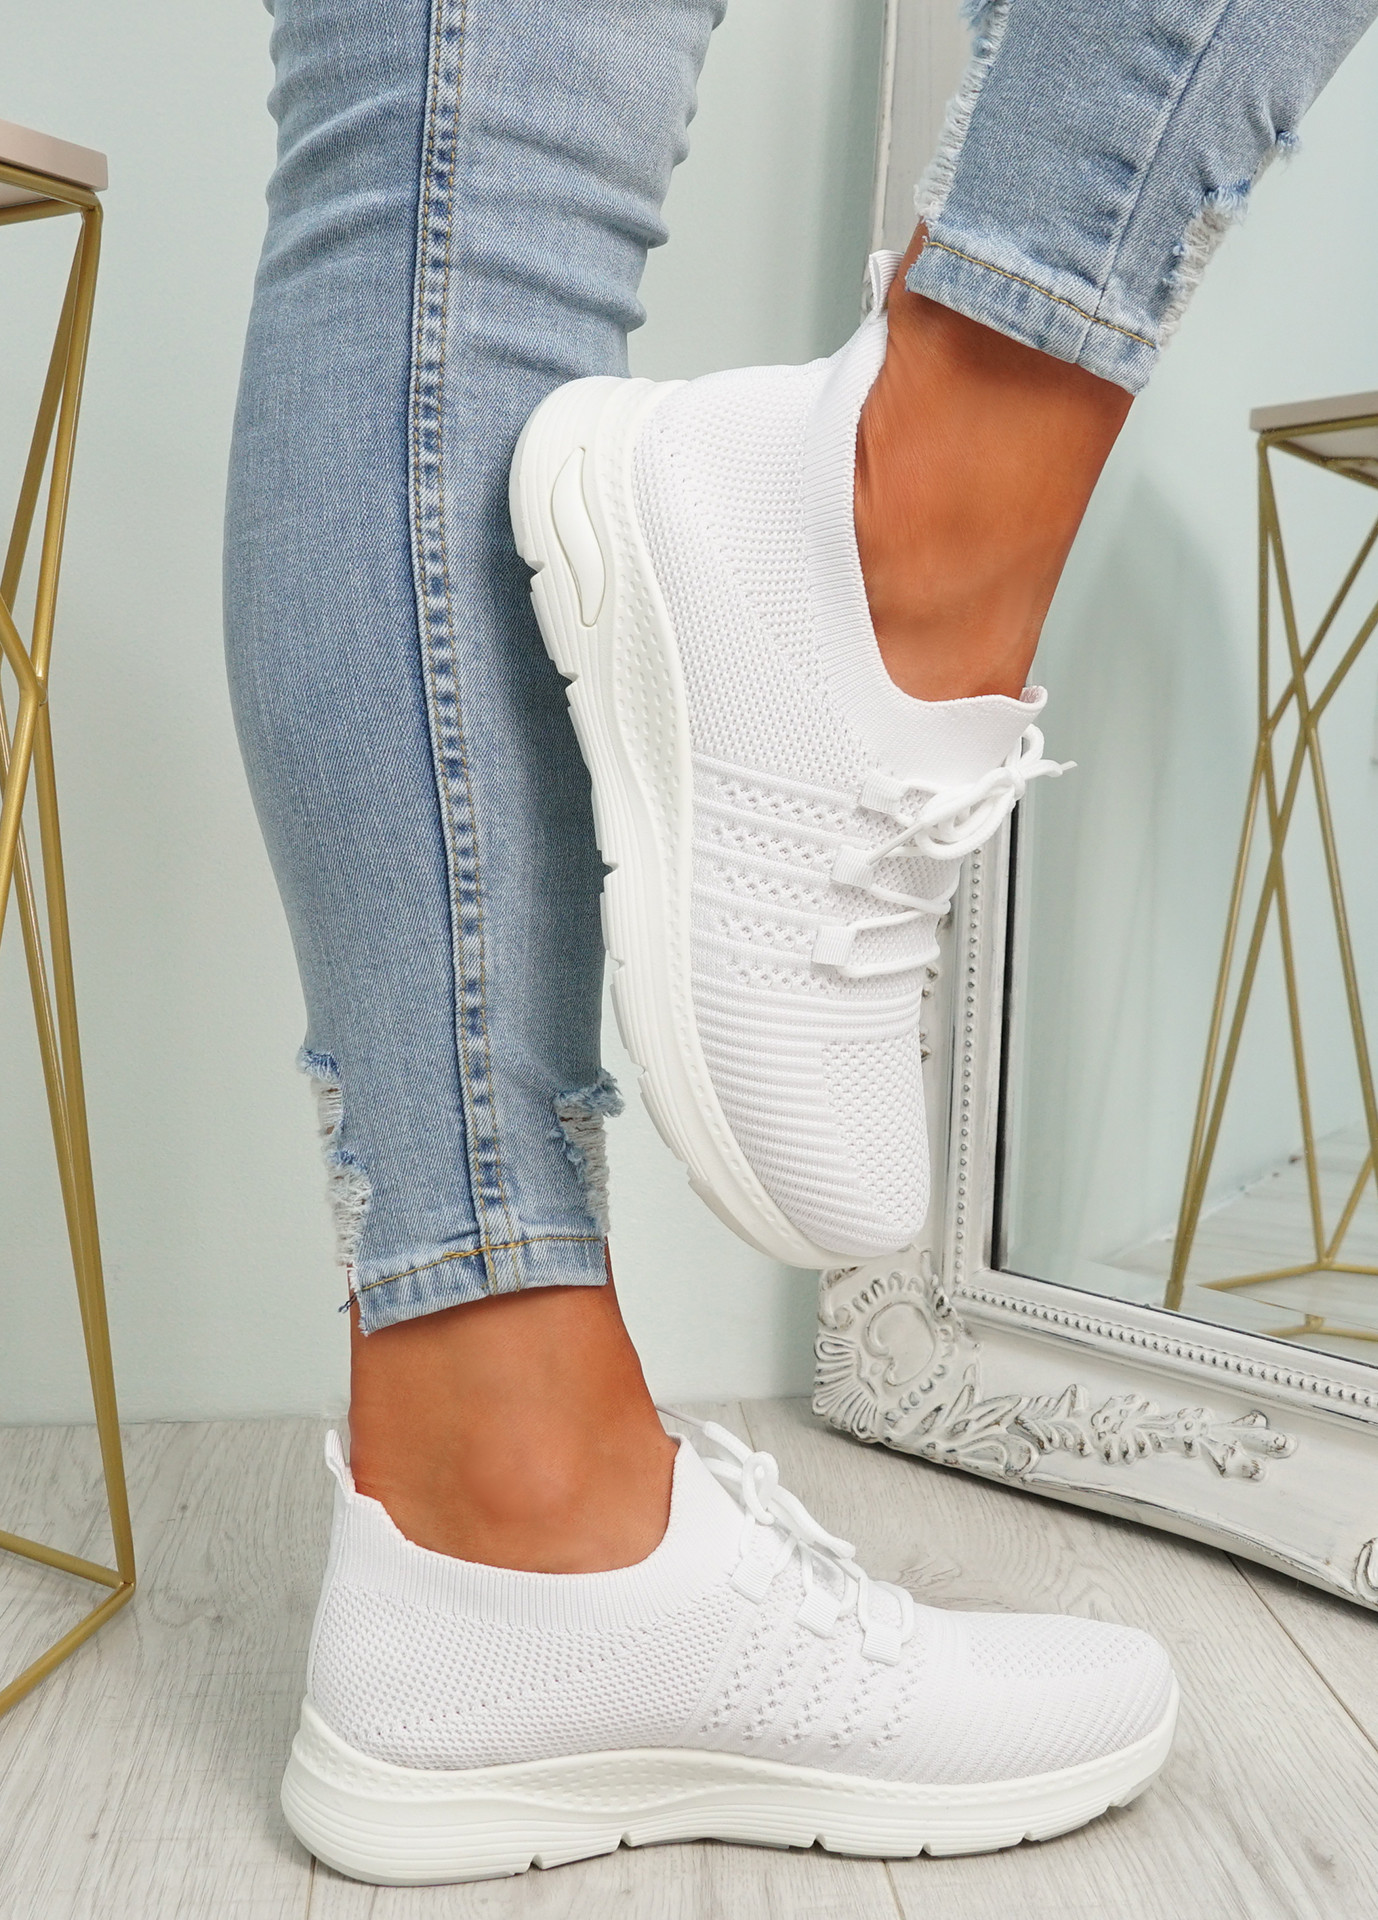 Lolla White Knit Sneakers